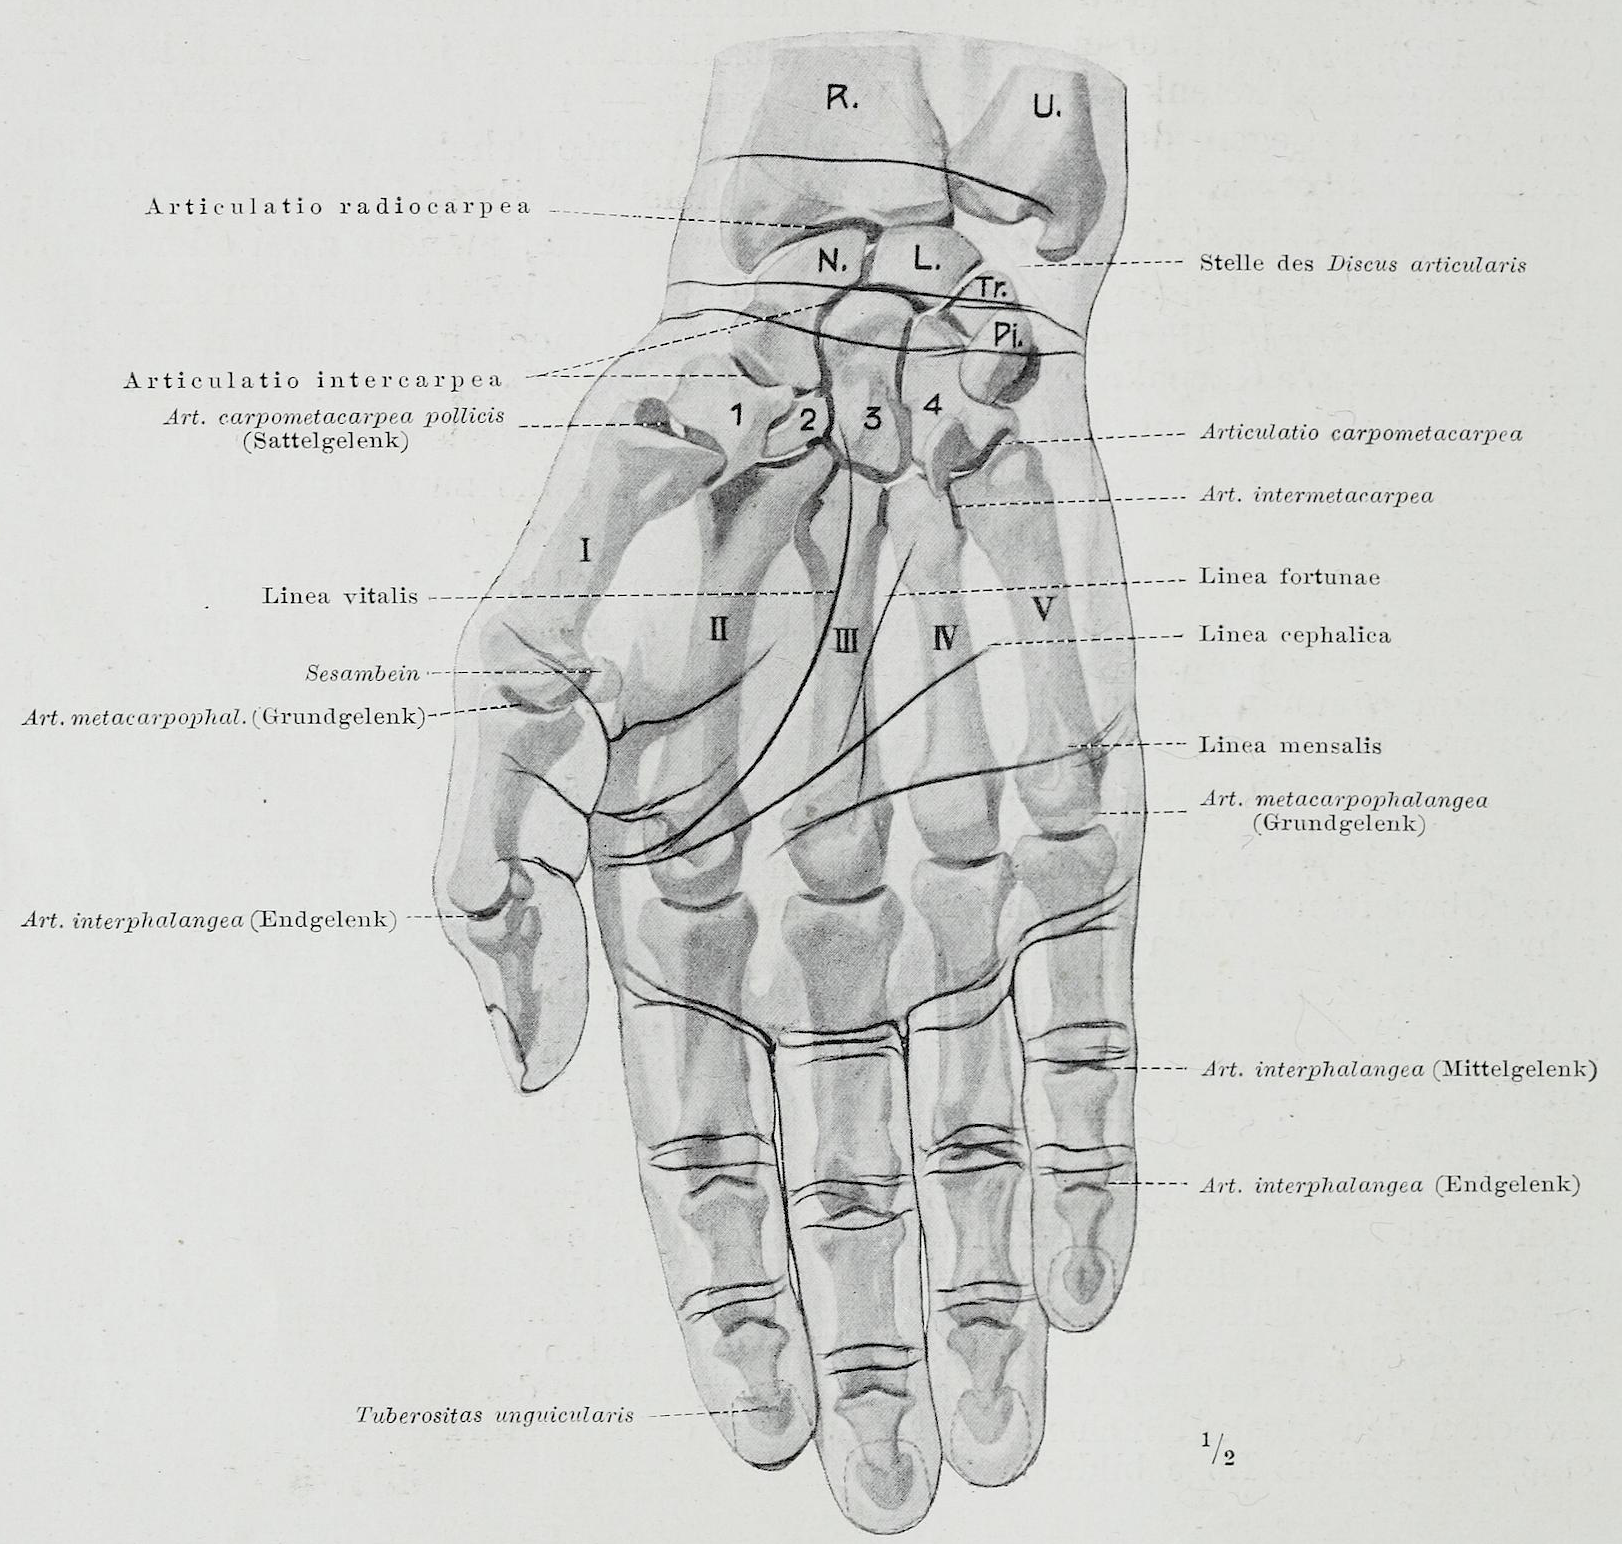 File:Braus 1921 187.png - Wikimedia Commons